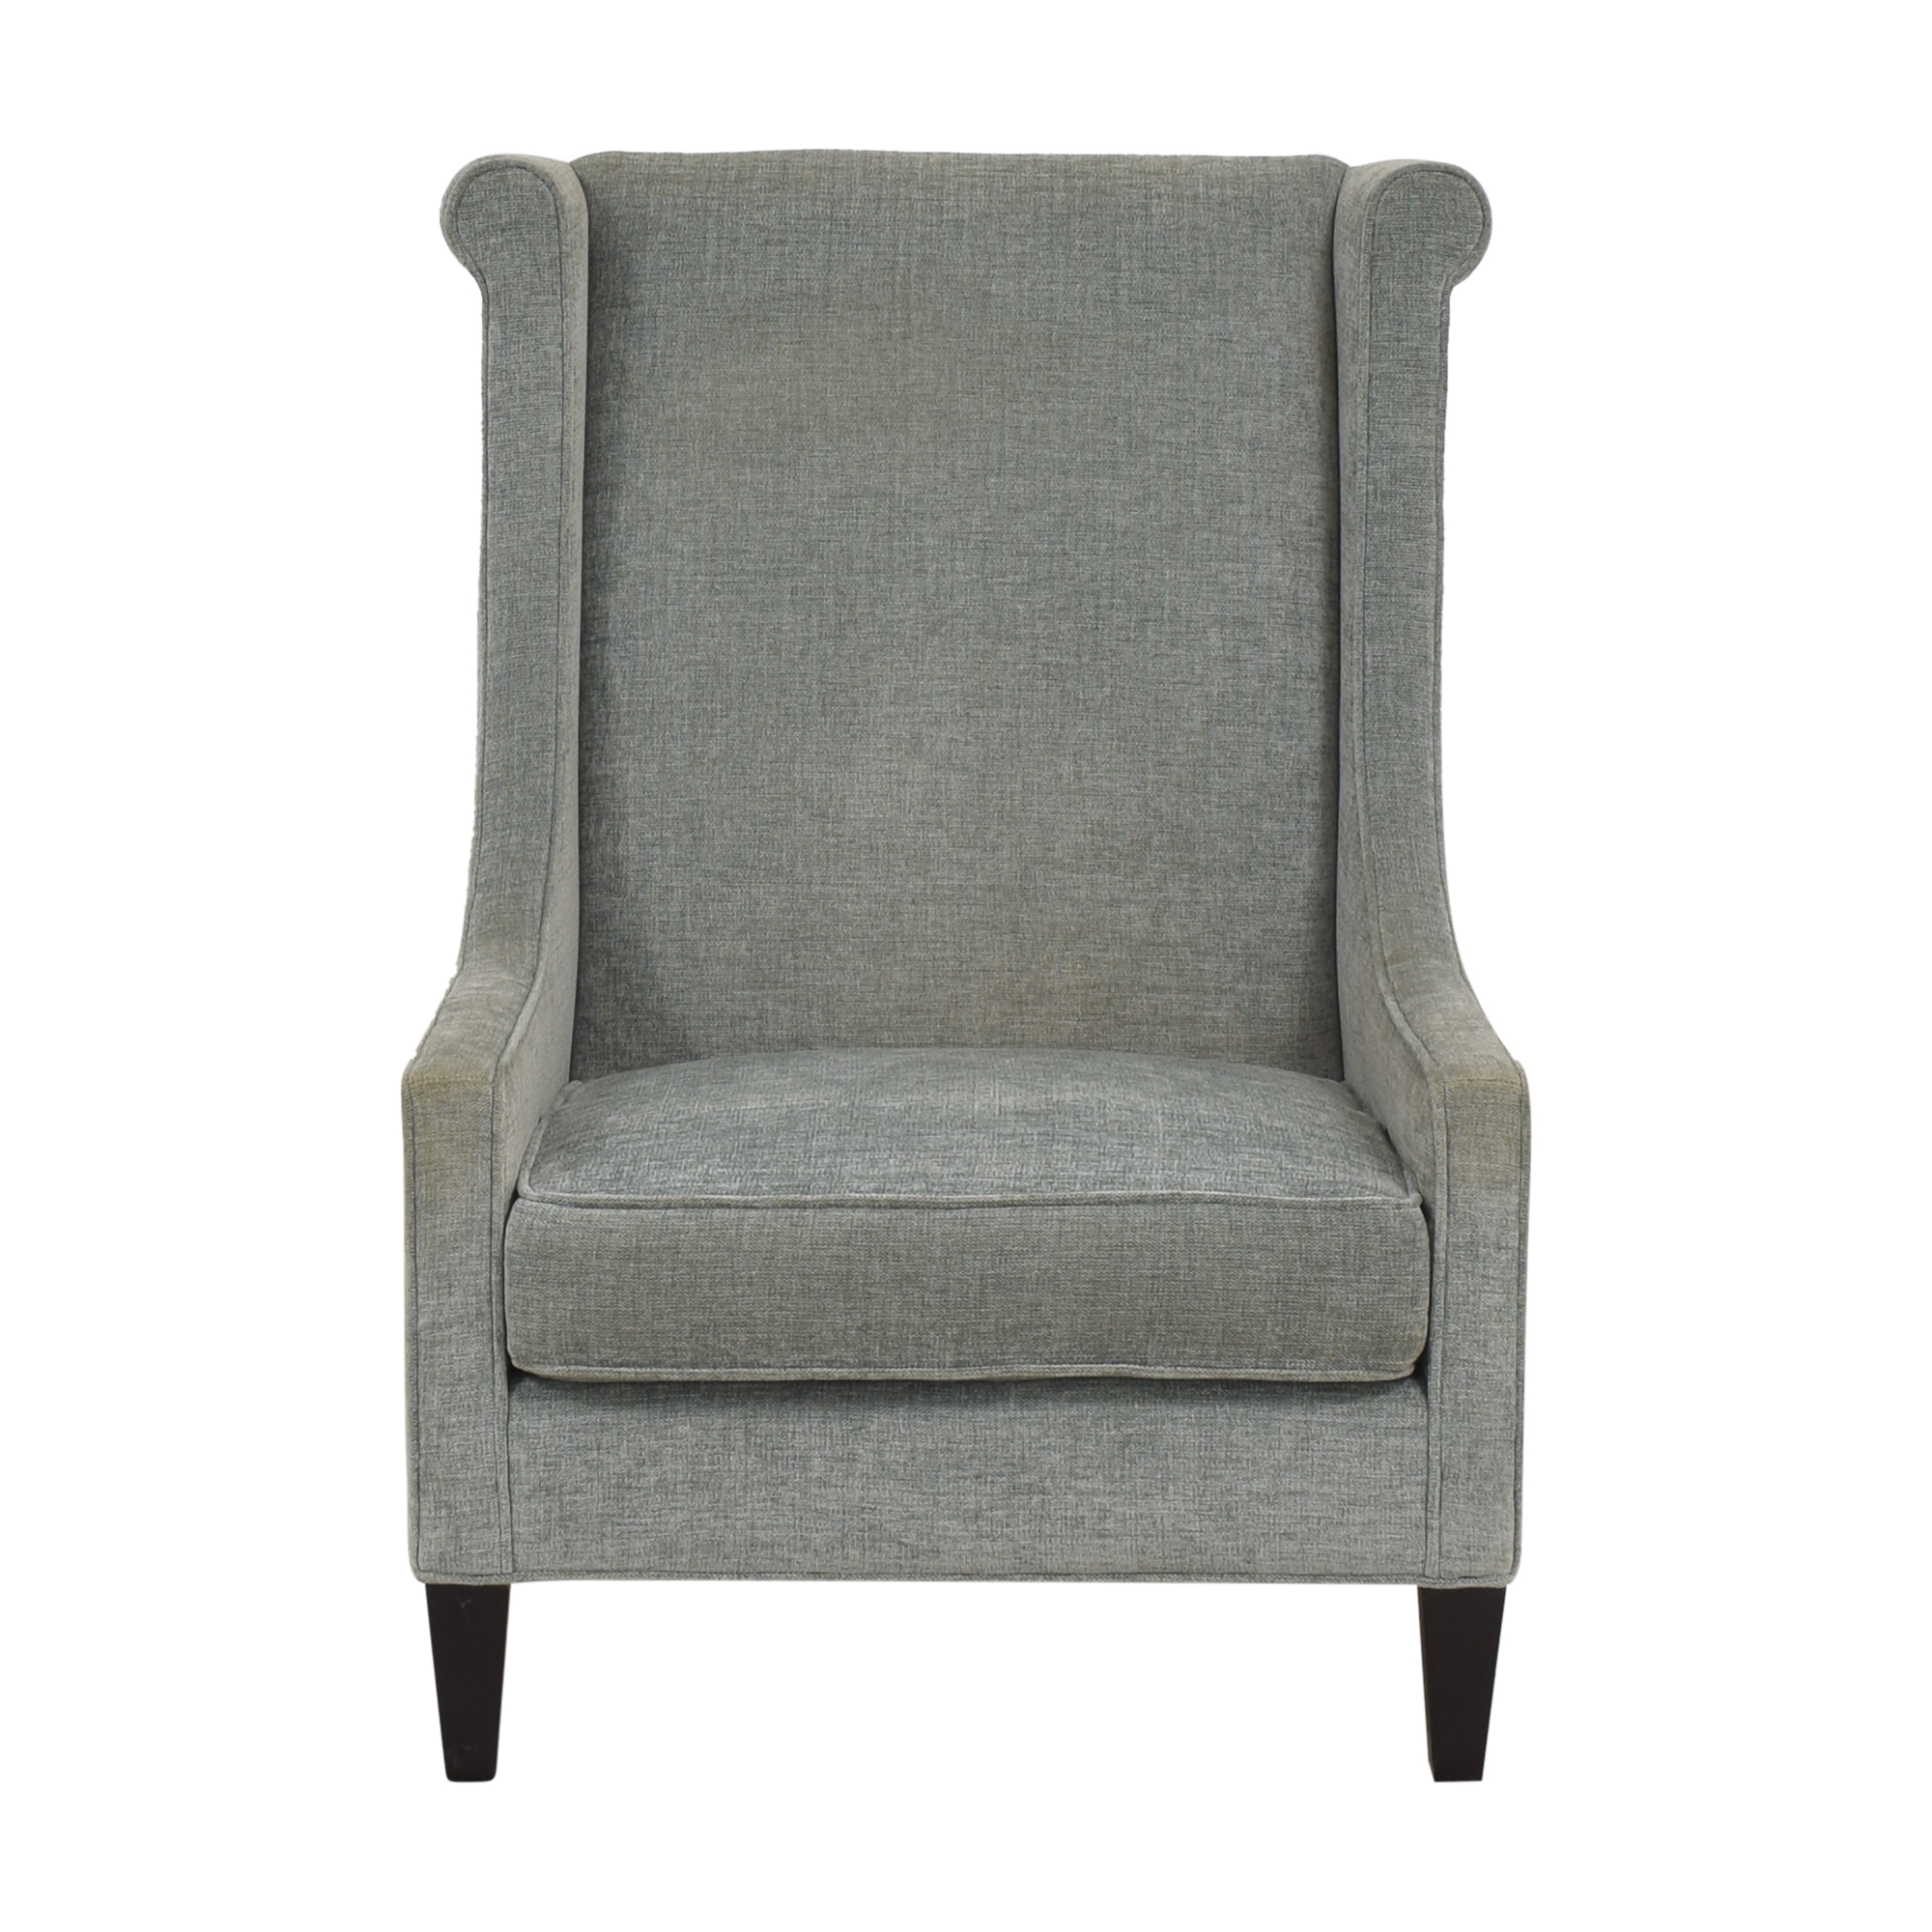 Custom Upholstered Accent Chair light blue